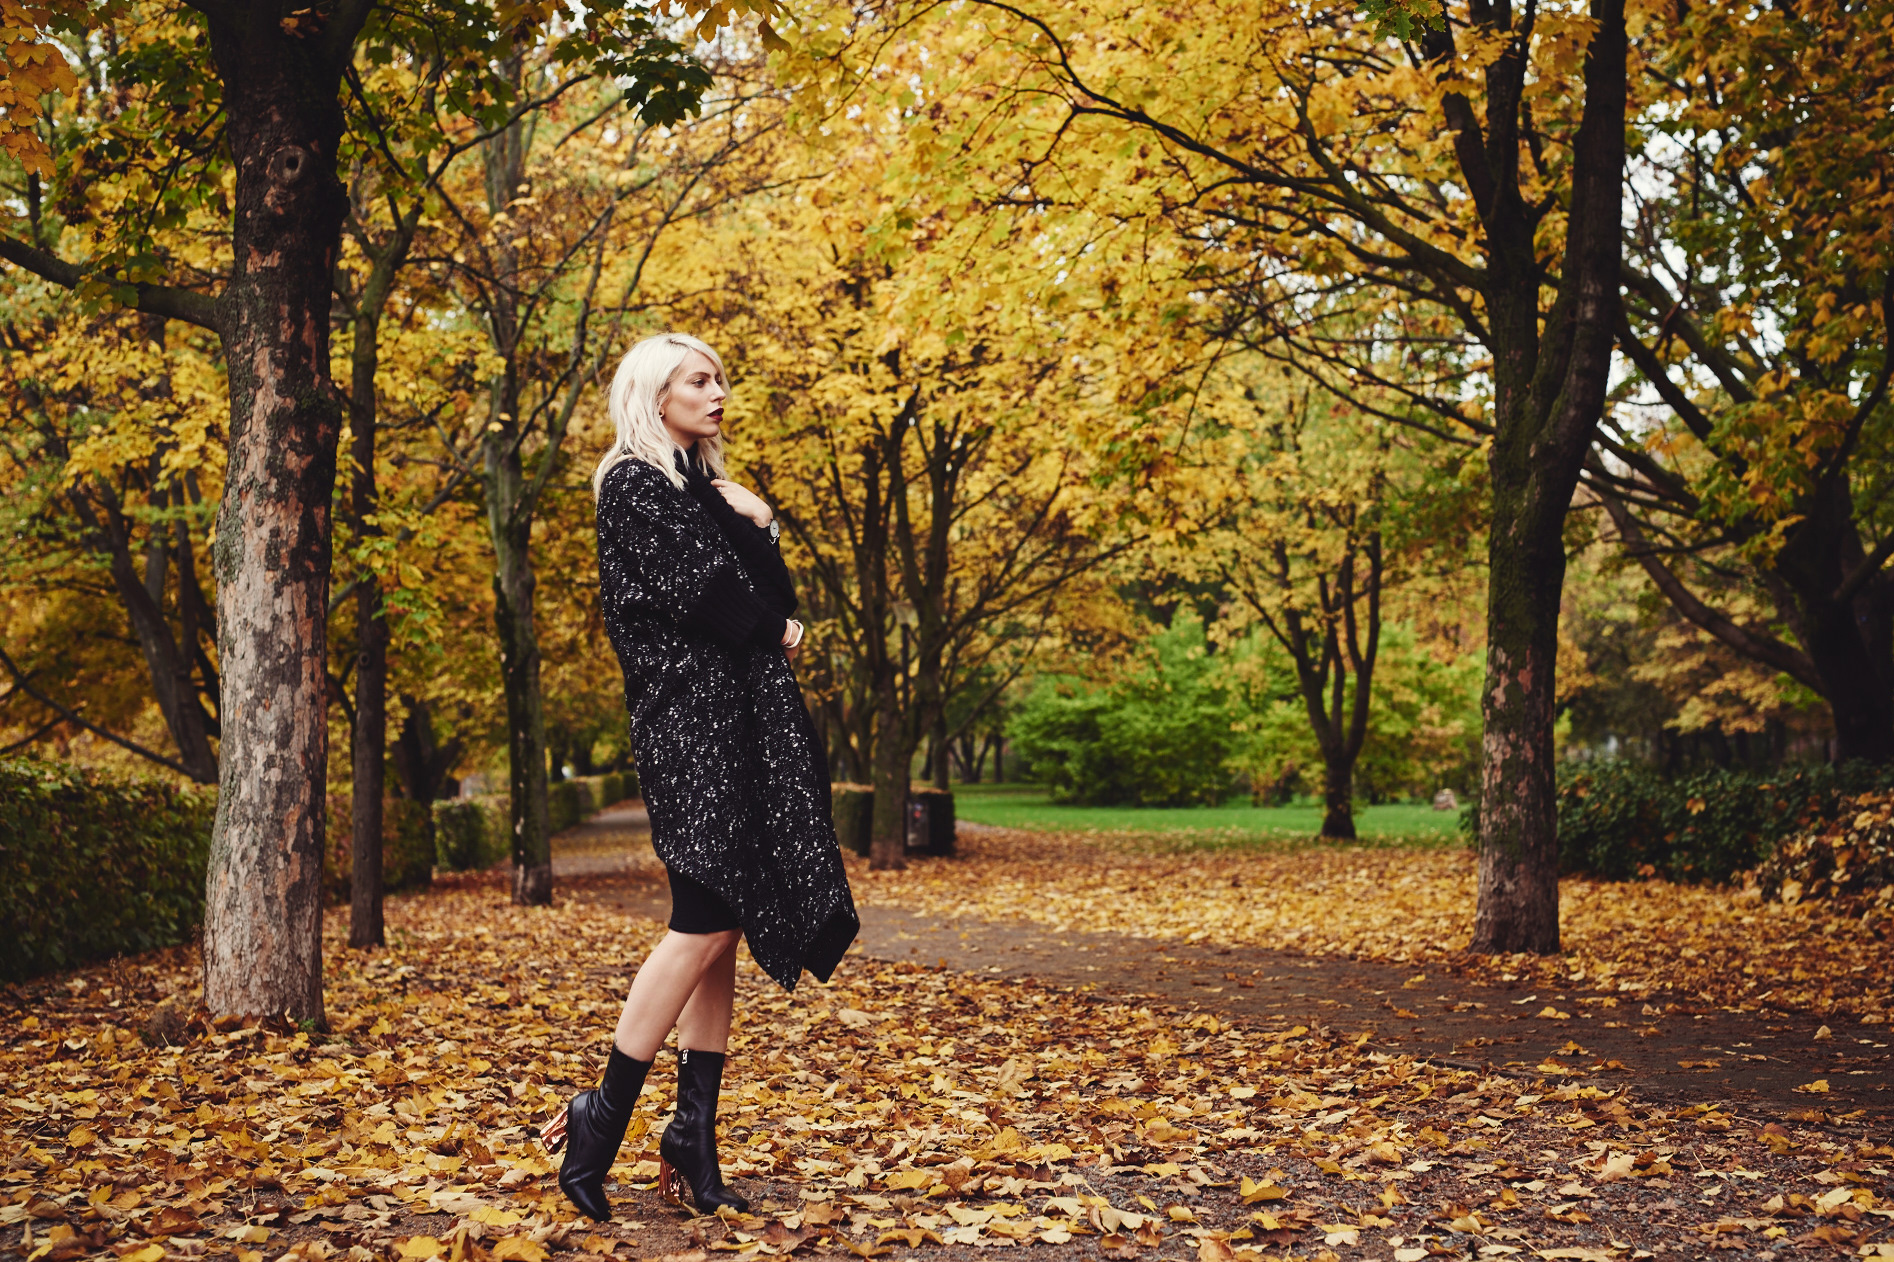 this one of my favorite pictures of 2015 | view more on my blog | best of: 2015 | Masha Sedgwick, fashion blog from Berlin | Autumn atmosphere in Berlin